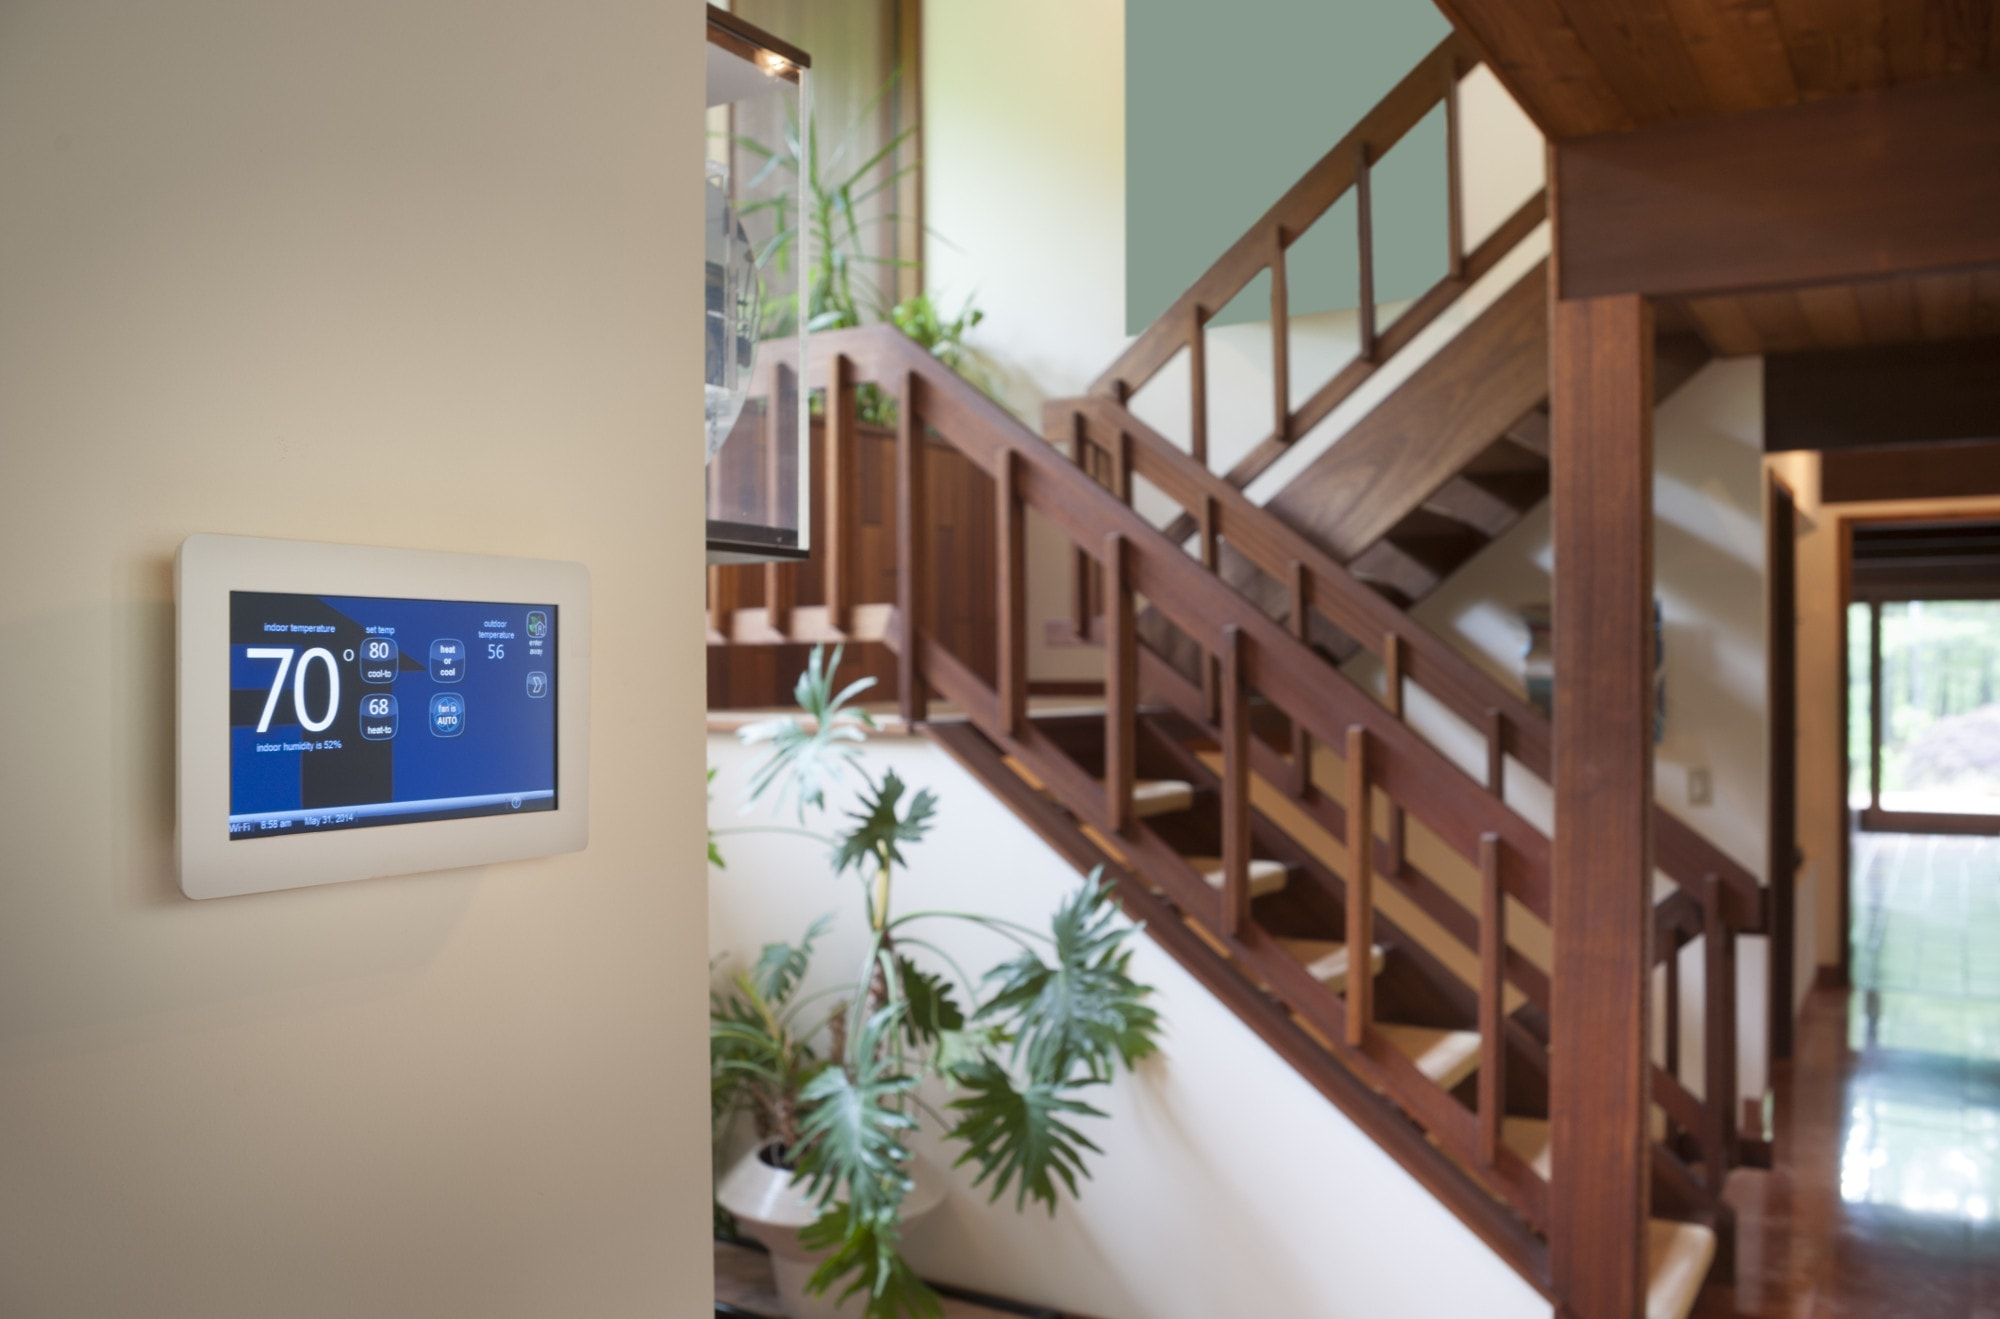 Smart-wall-energy-control-thermostat-min